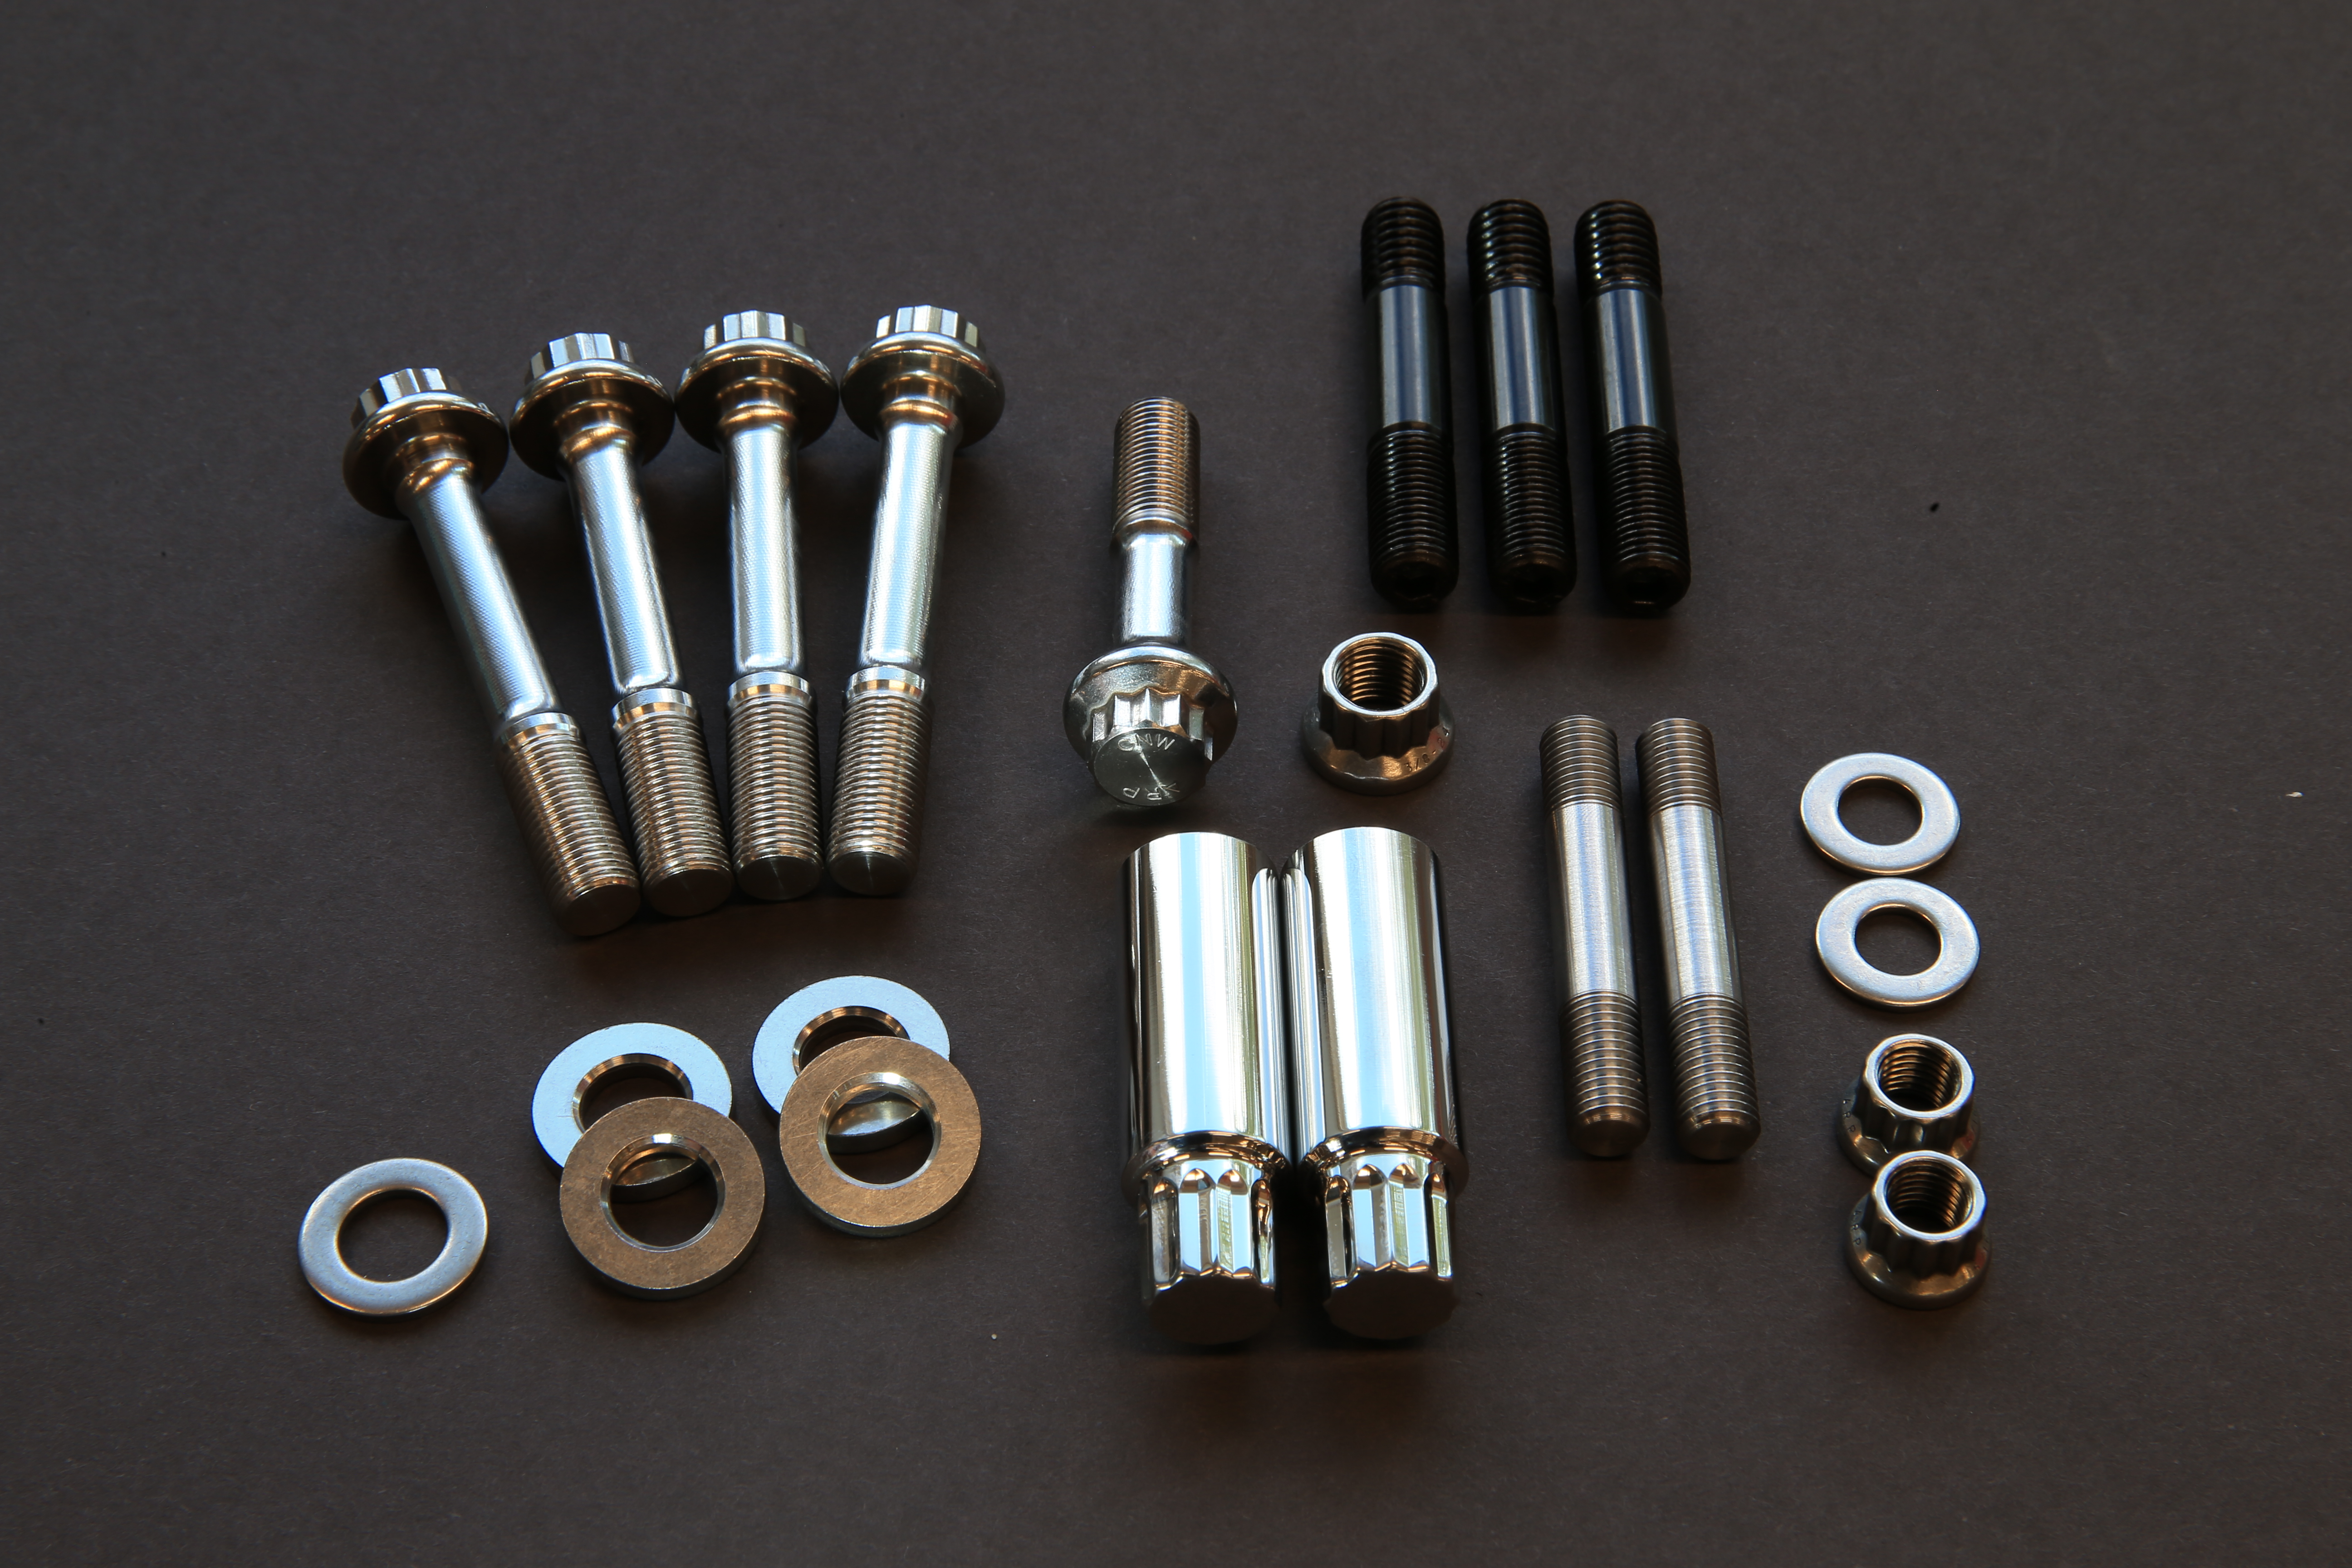 cNw Hardware & Fasteners